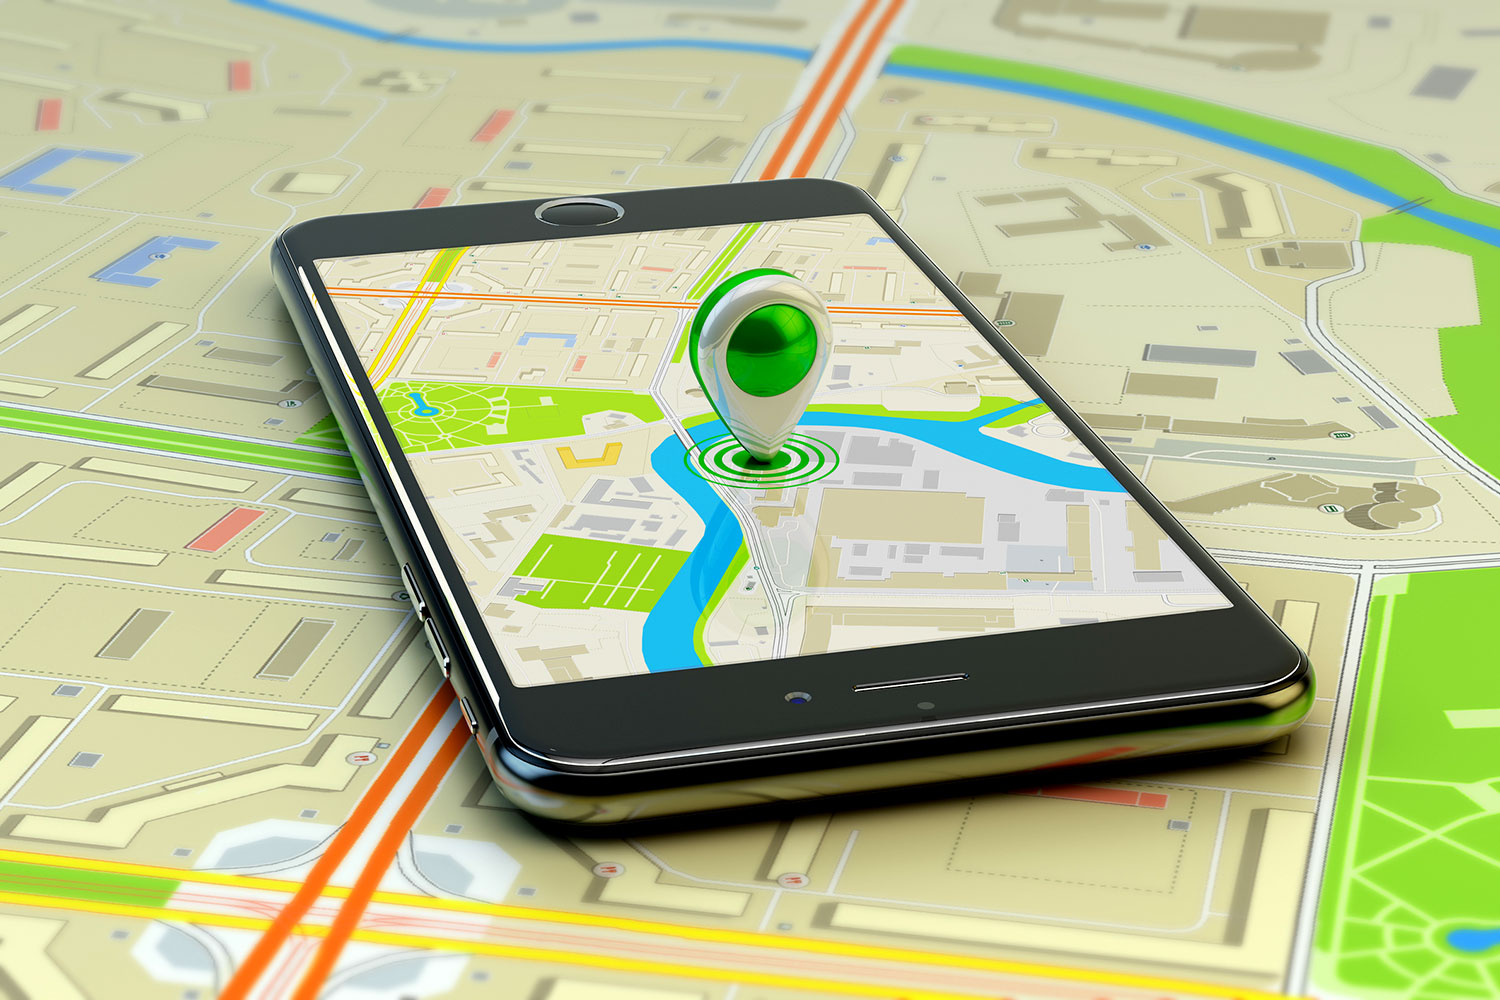 Mobile-gps-navigation-with-cell-phone